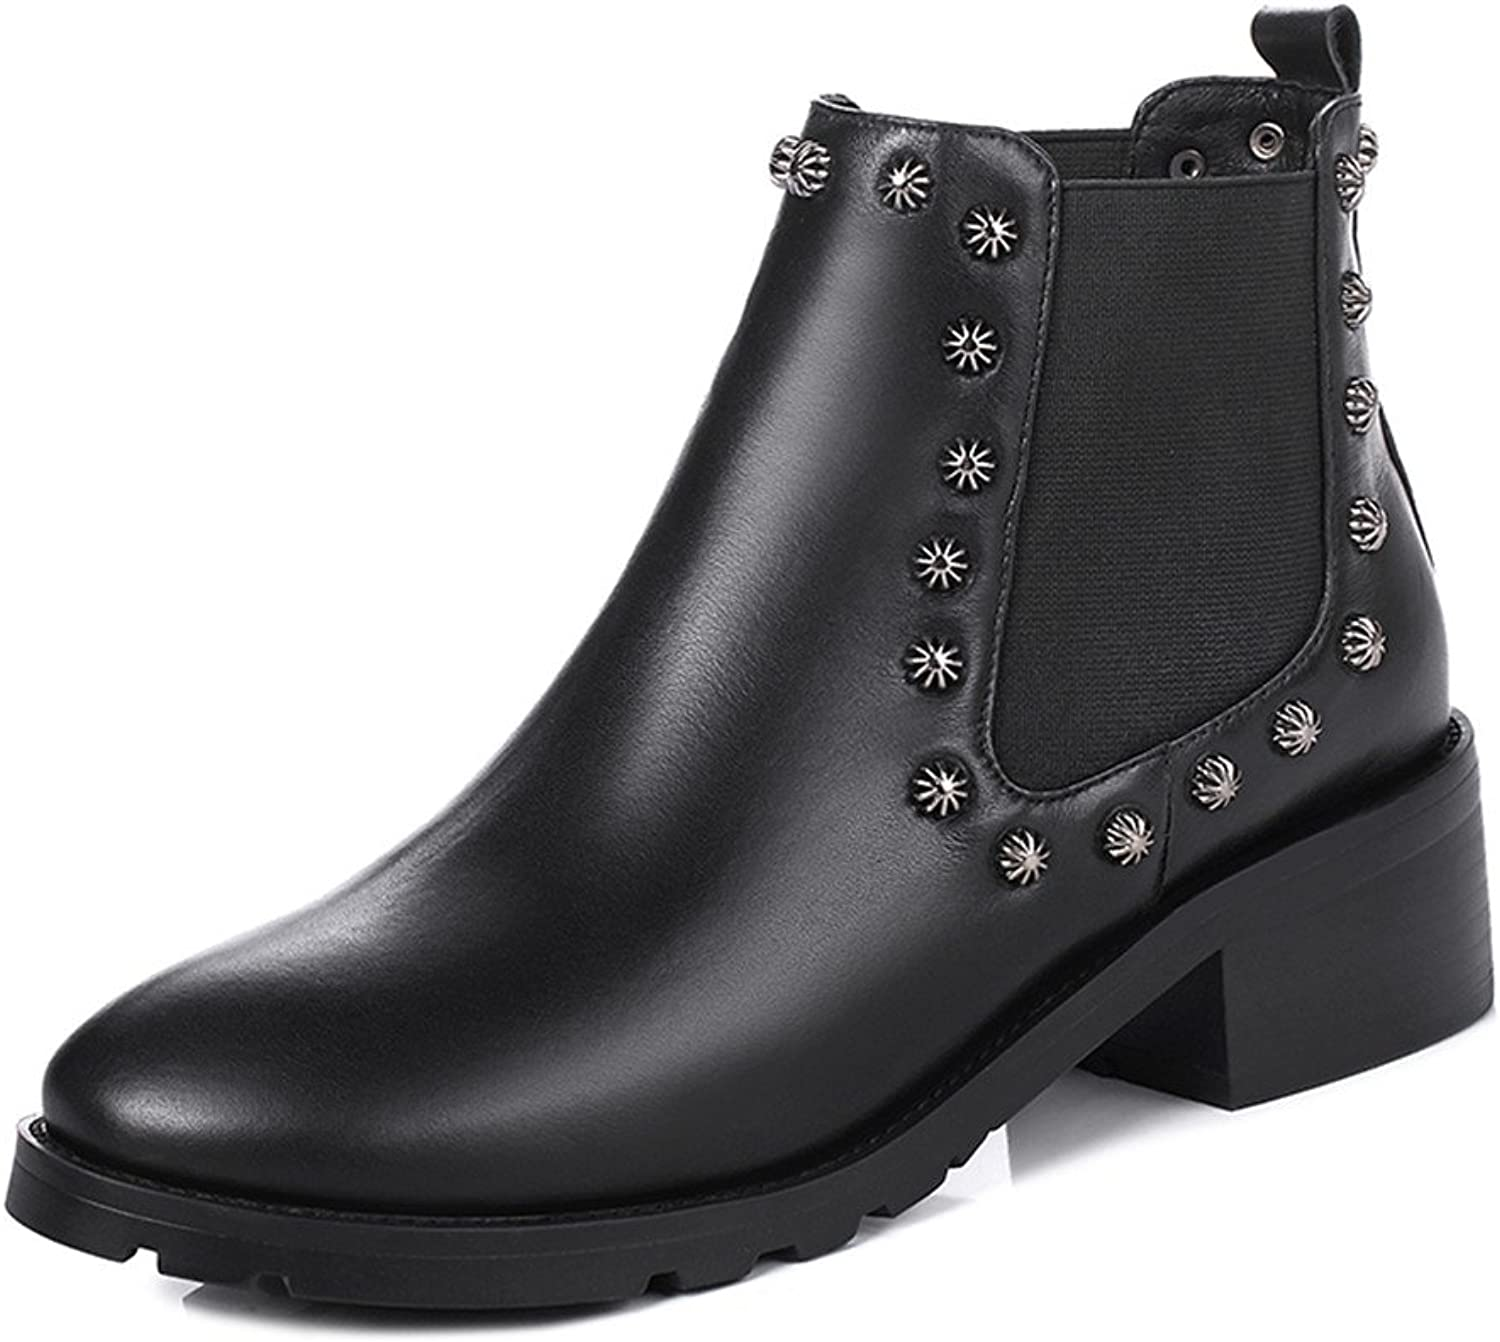 Nine Seven Genuine Leather Women's Round Toe Low Heel Slip On Handmade Cool Casual Ankle Boots